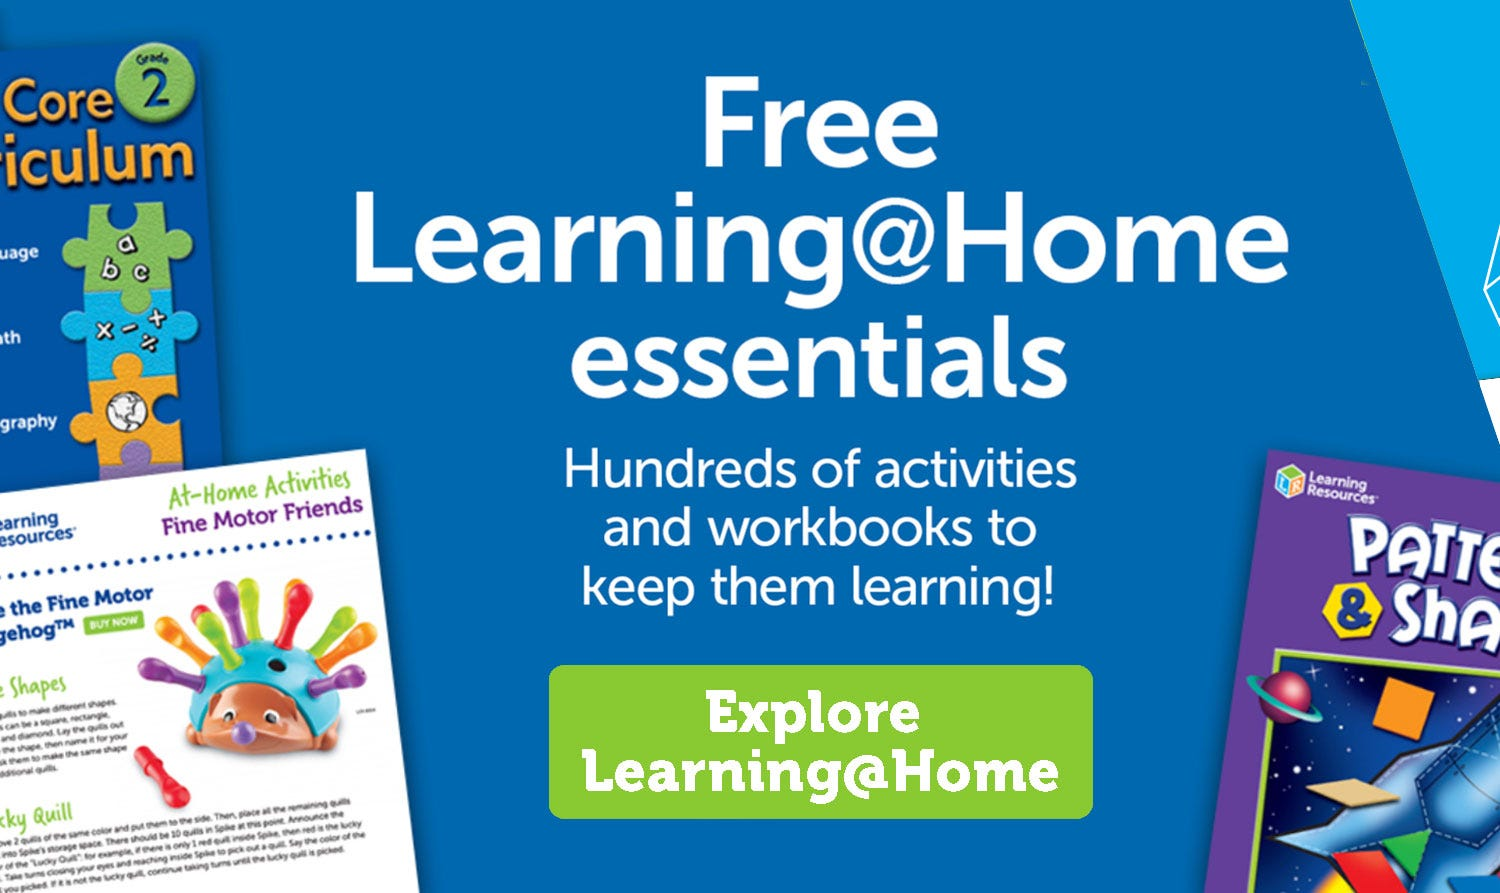 Explore Learning@Home